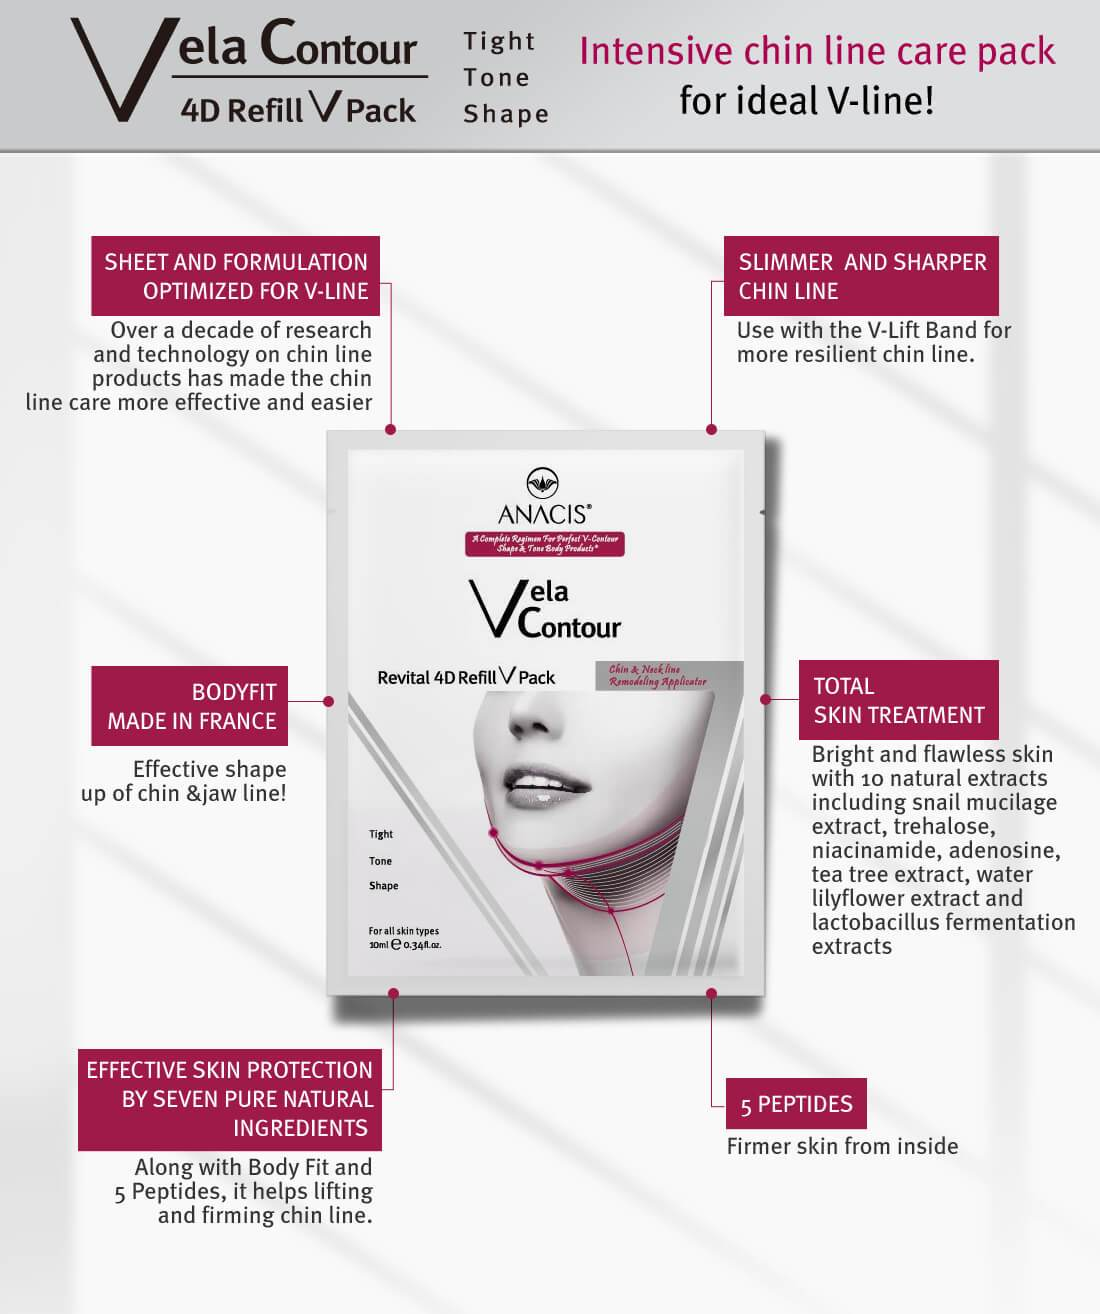 Total skin treatment slimmer and shapper chin line - Medactiveshop